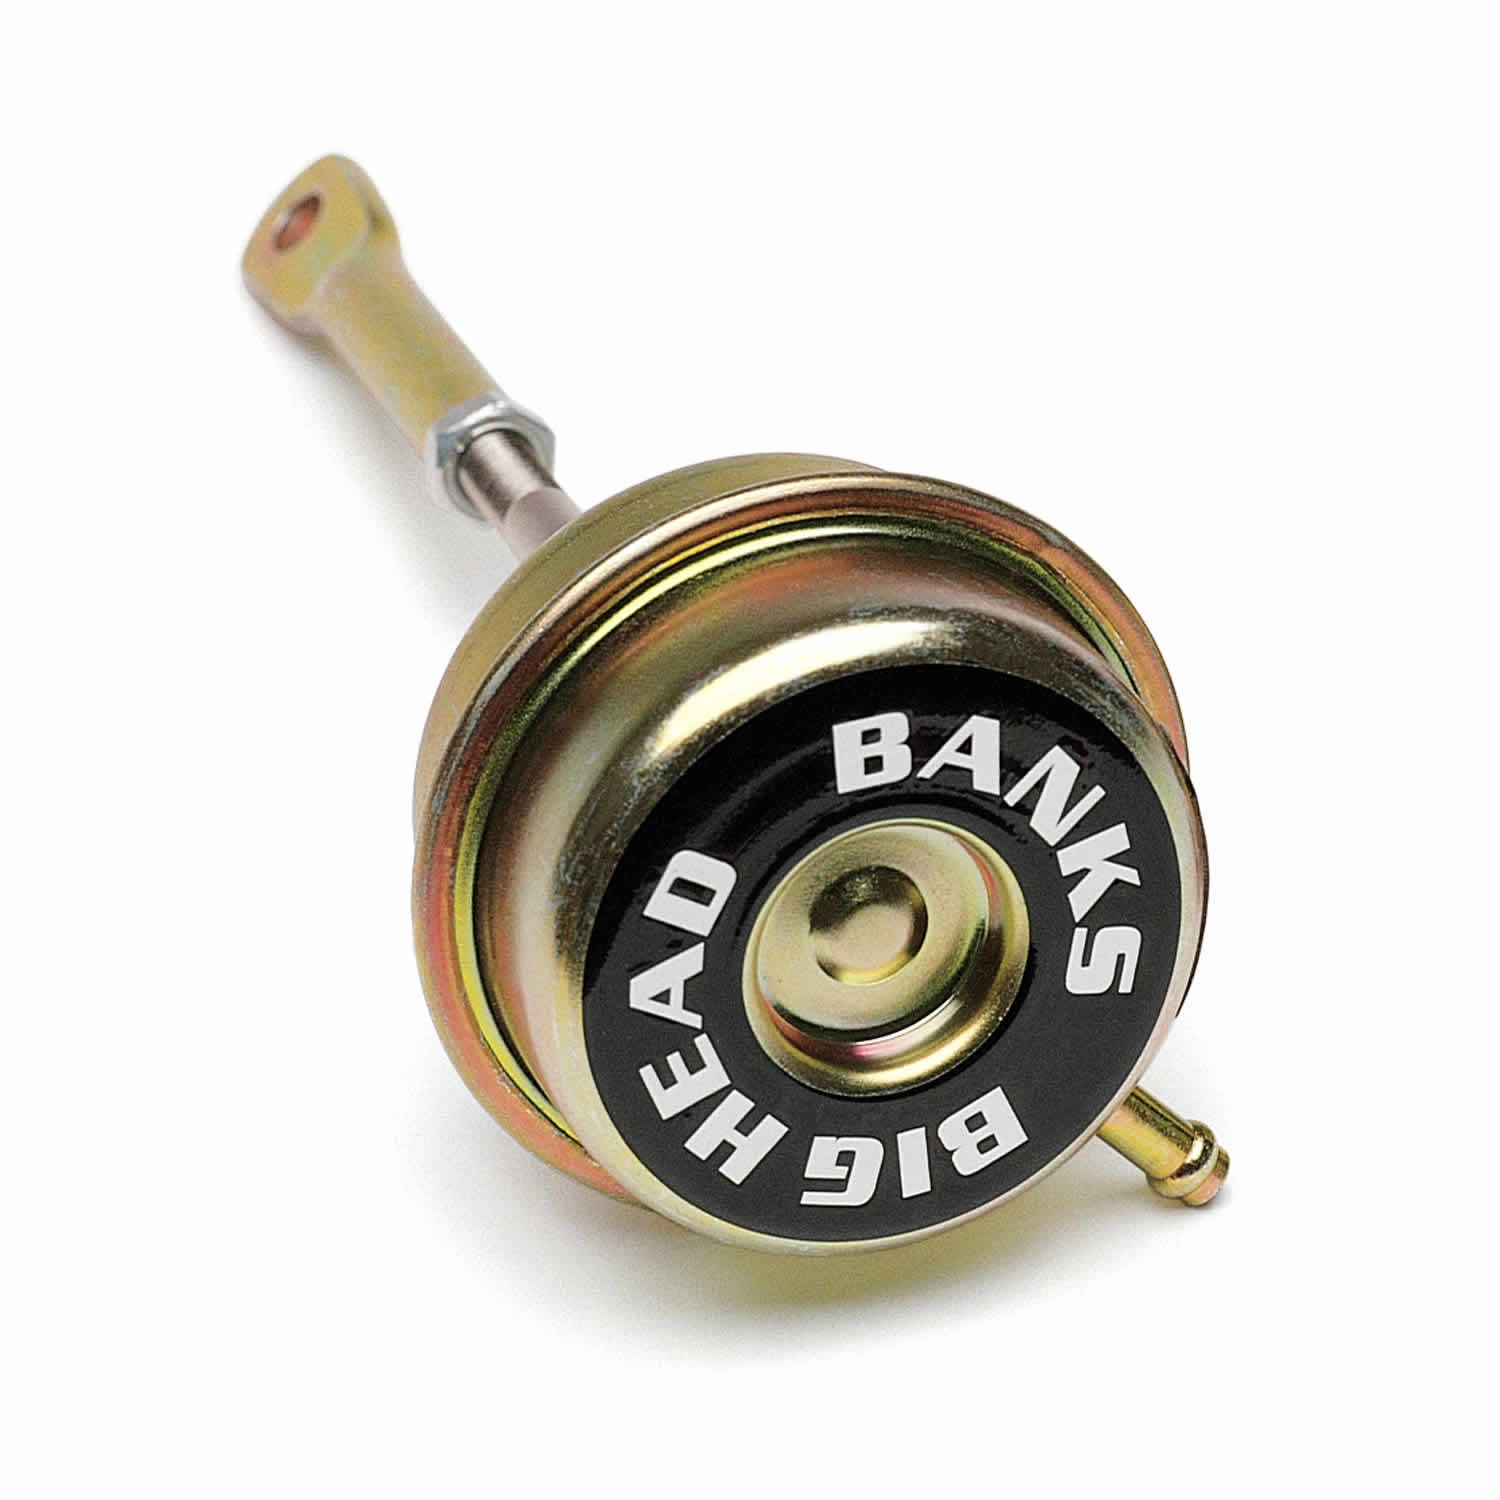 Banks Power 24328 BigHead Wastegate Actuator Fits 94-98 Ram 2500 Ram 3500